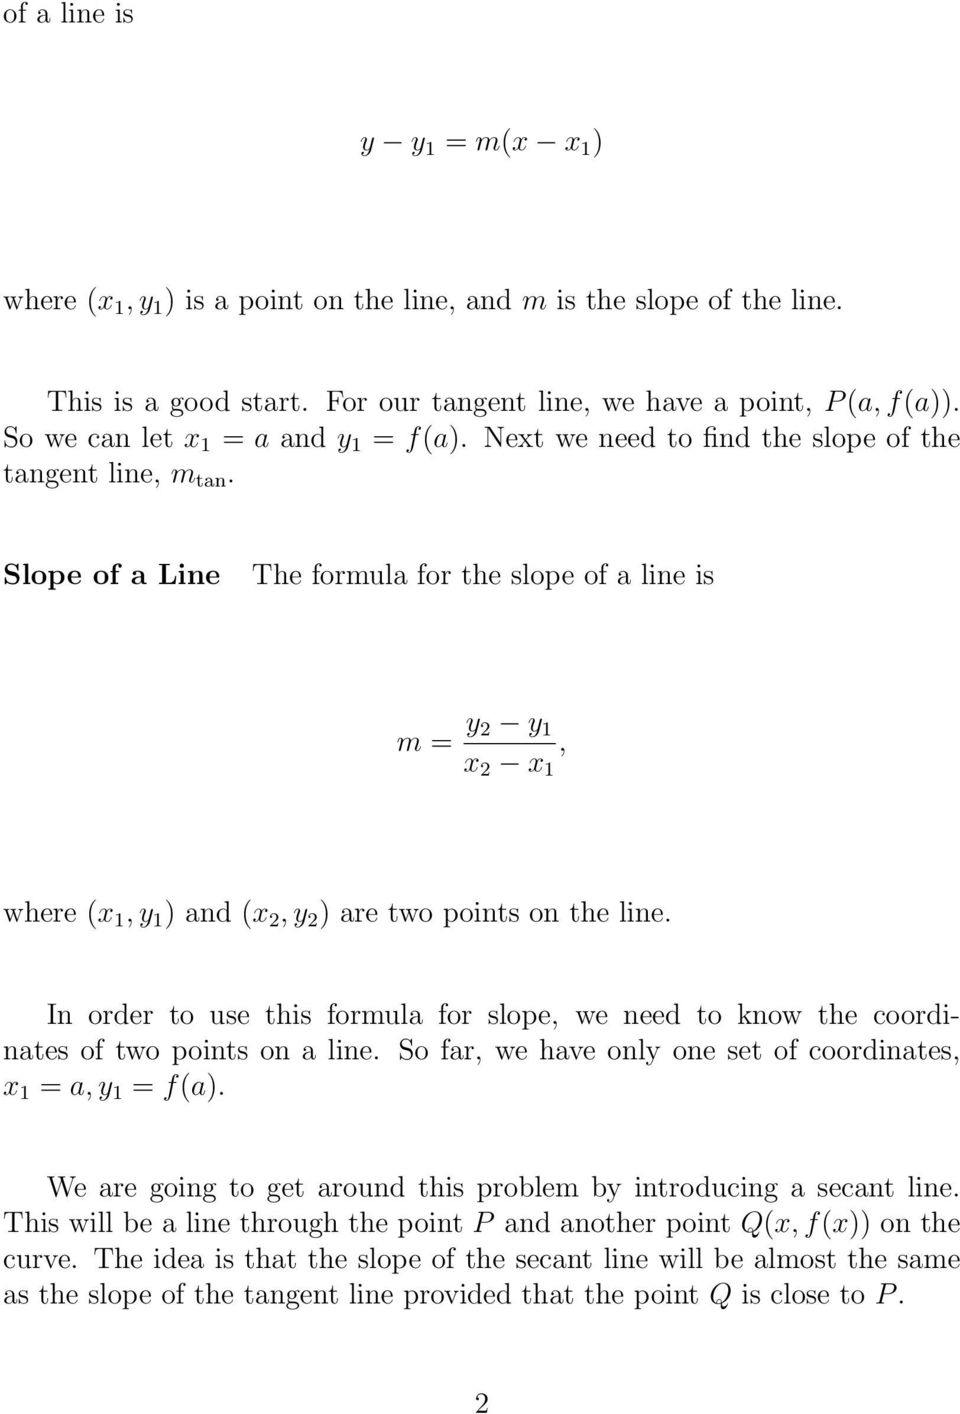 Slope of a Line Te formula for te slope of a line is m = y 2 y 1 x 2 x 1, were (x 1, y 1 ) and (x 2, y 2 ) are two points on te line.